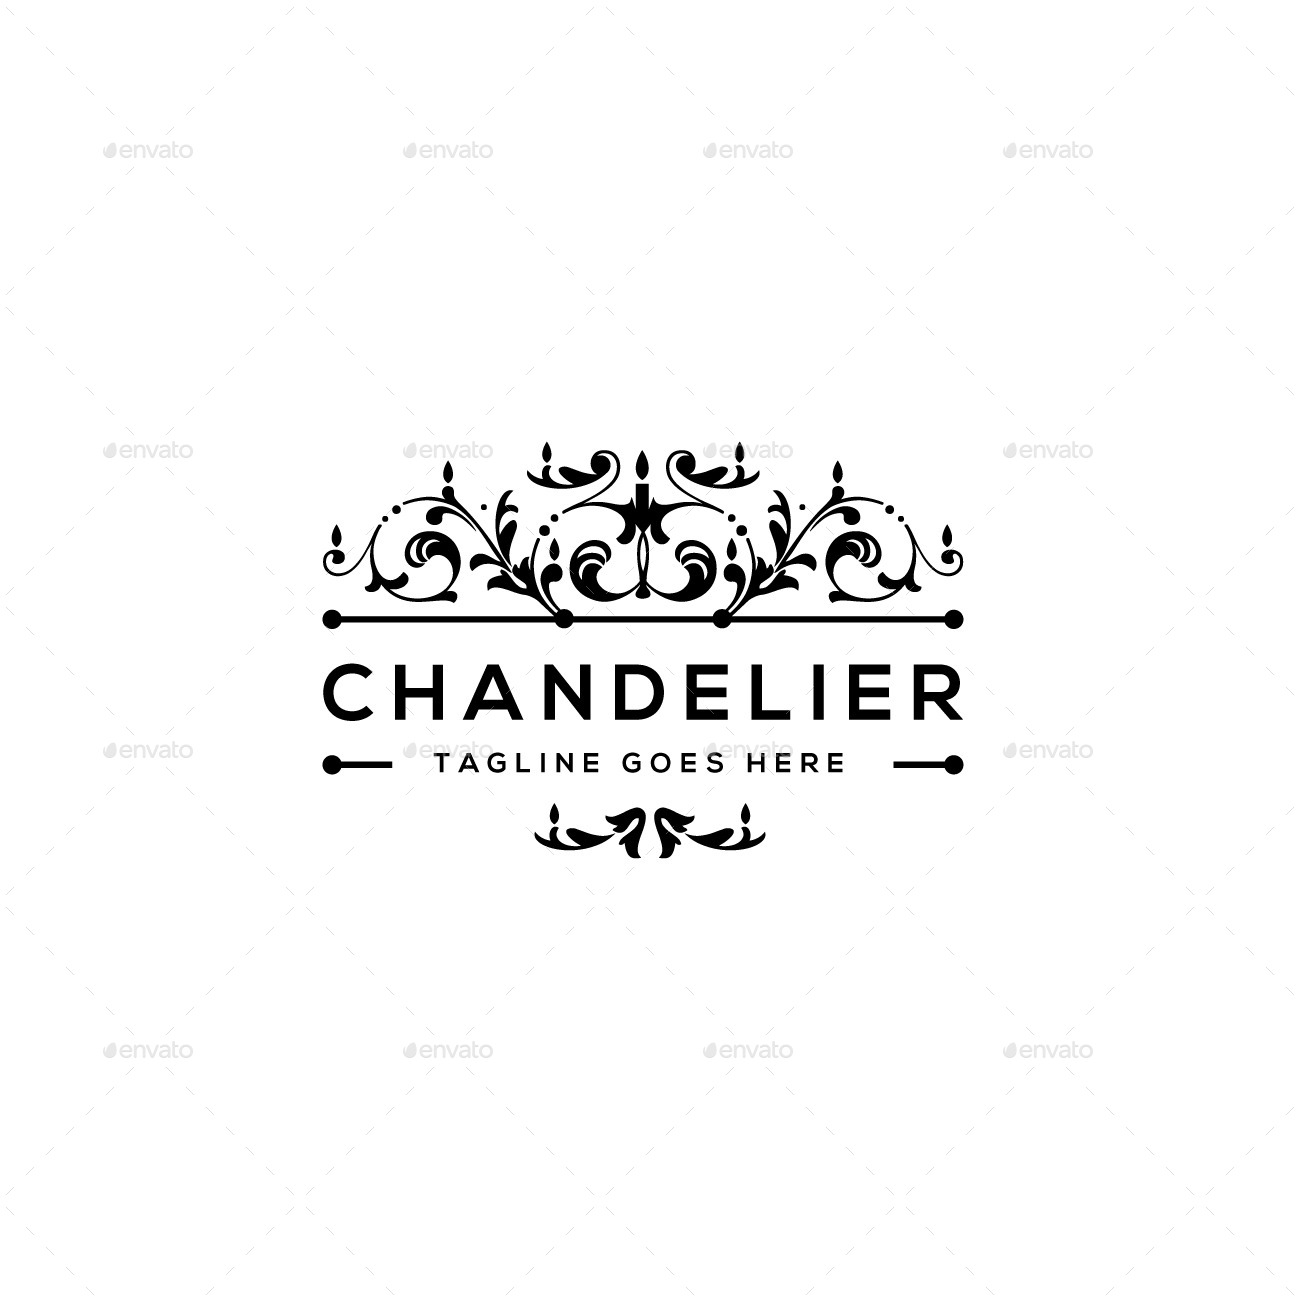 chandelier logo template by designgarrad